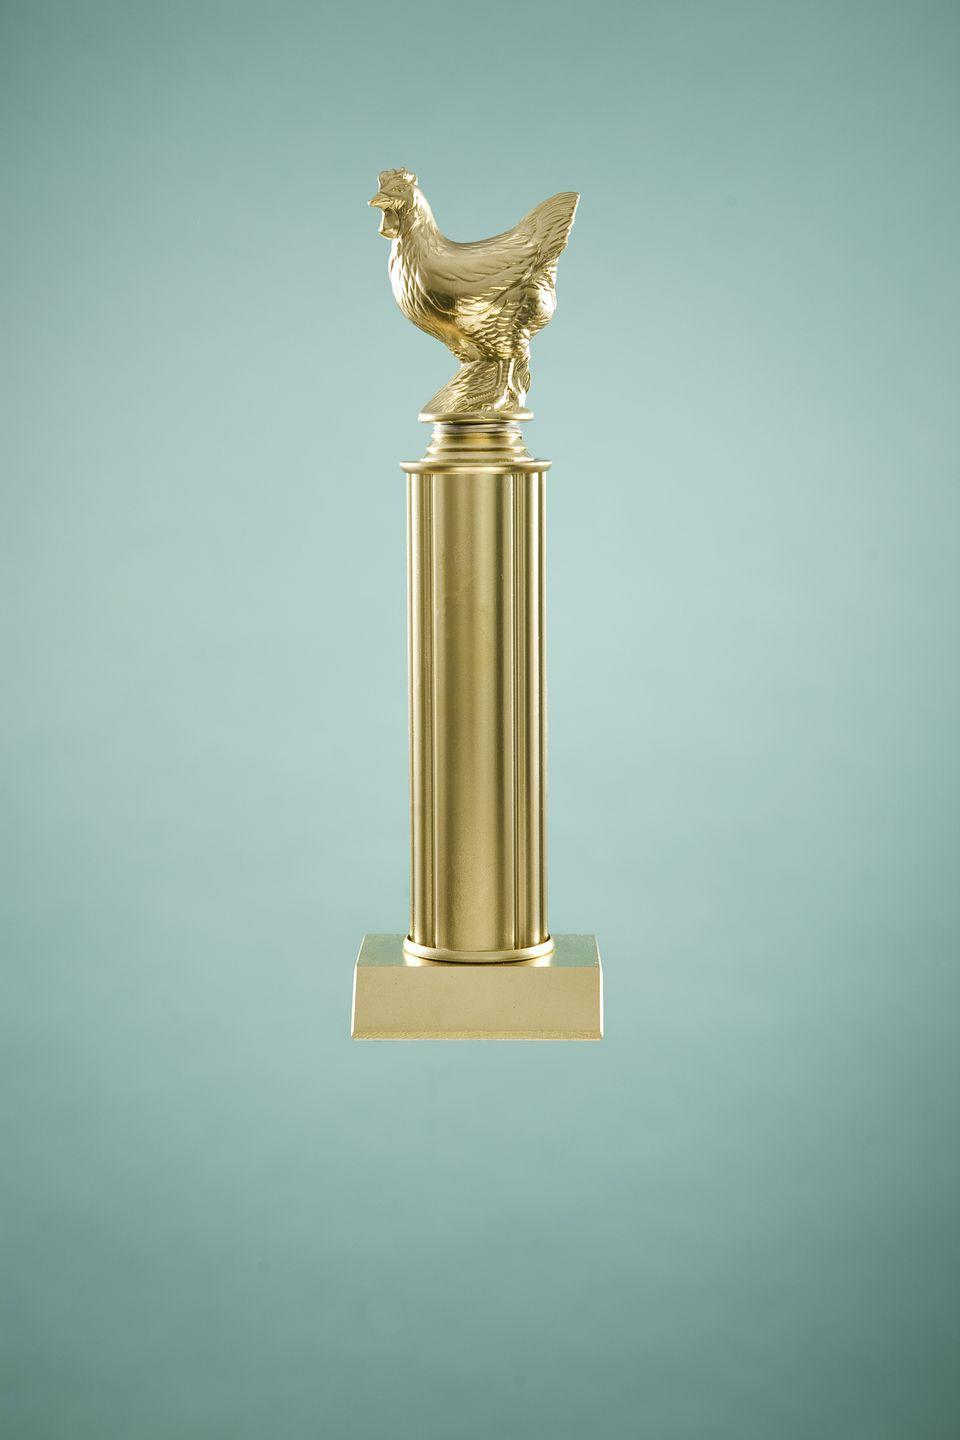 <p>Yes, your kid is #1, but if your kid is also no longer actually a kid, take a #shelfie of all of the participation trophies she's gathered over the years and frame that instead to make room for more memories. </p>